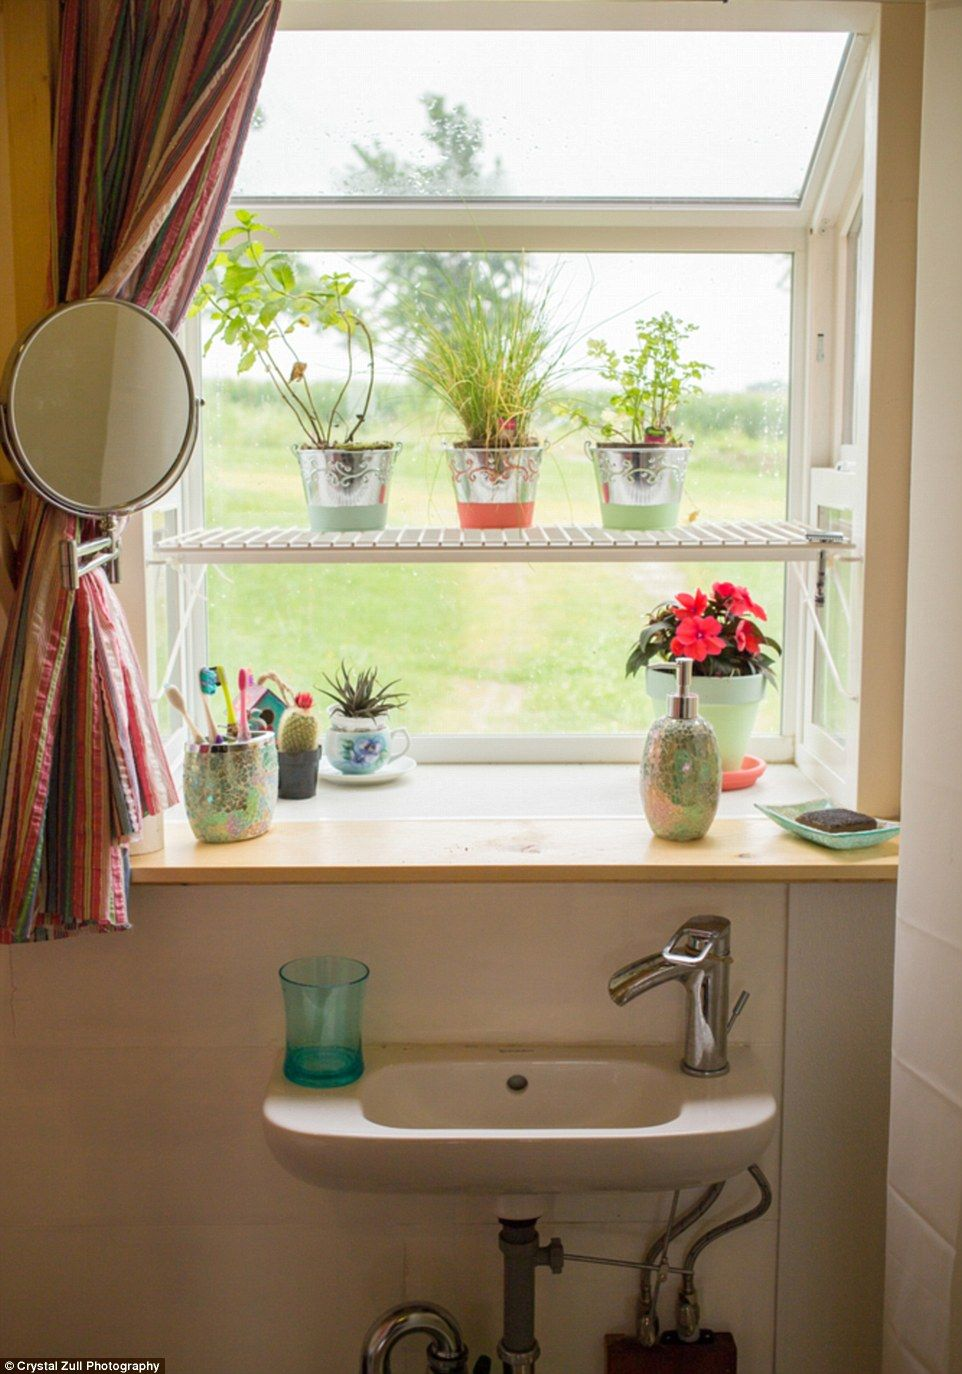 Natural beauty: Thelarge garden window in the bathroom gives off plenty of natural light and is perfect for storing potted plants and flowers